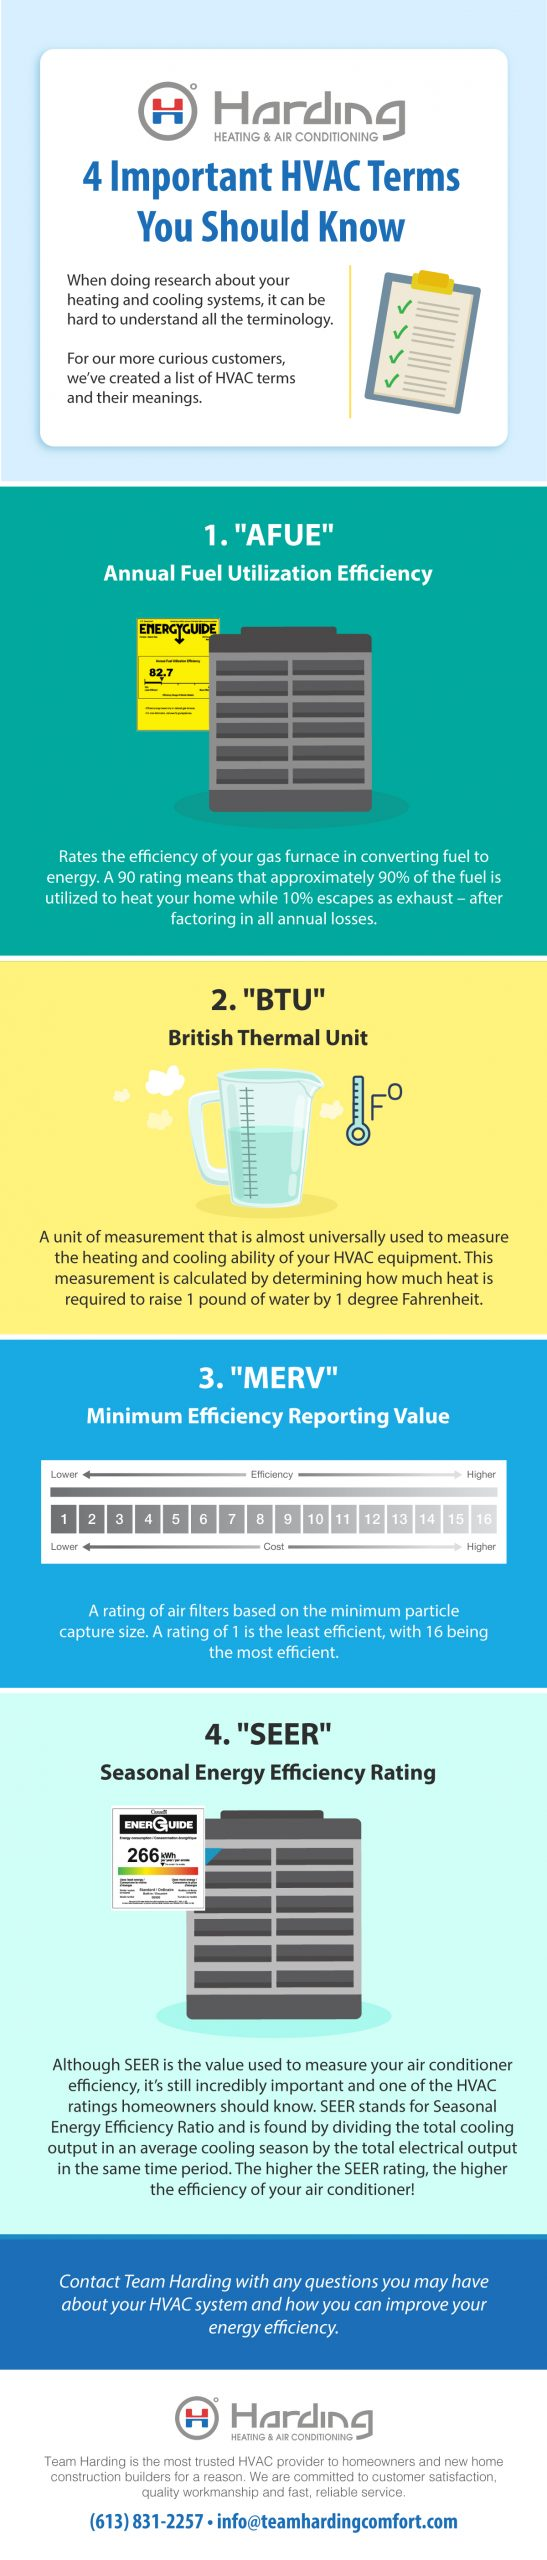 important HVAC terms